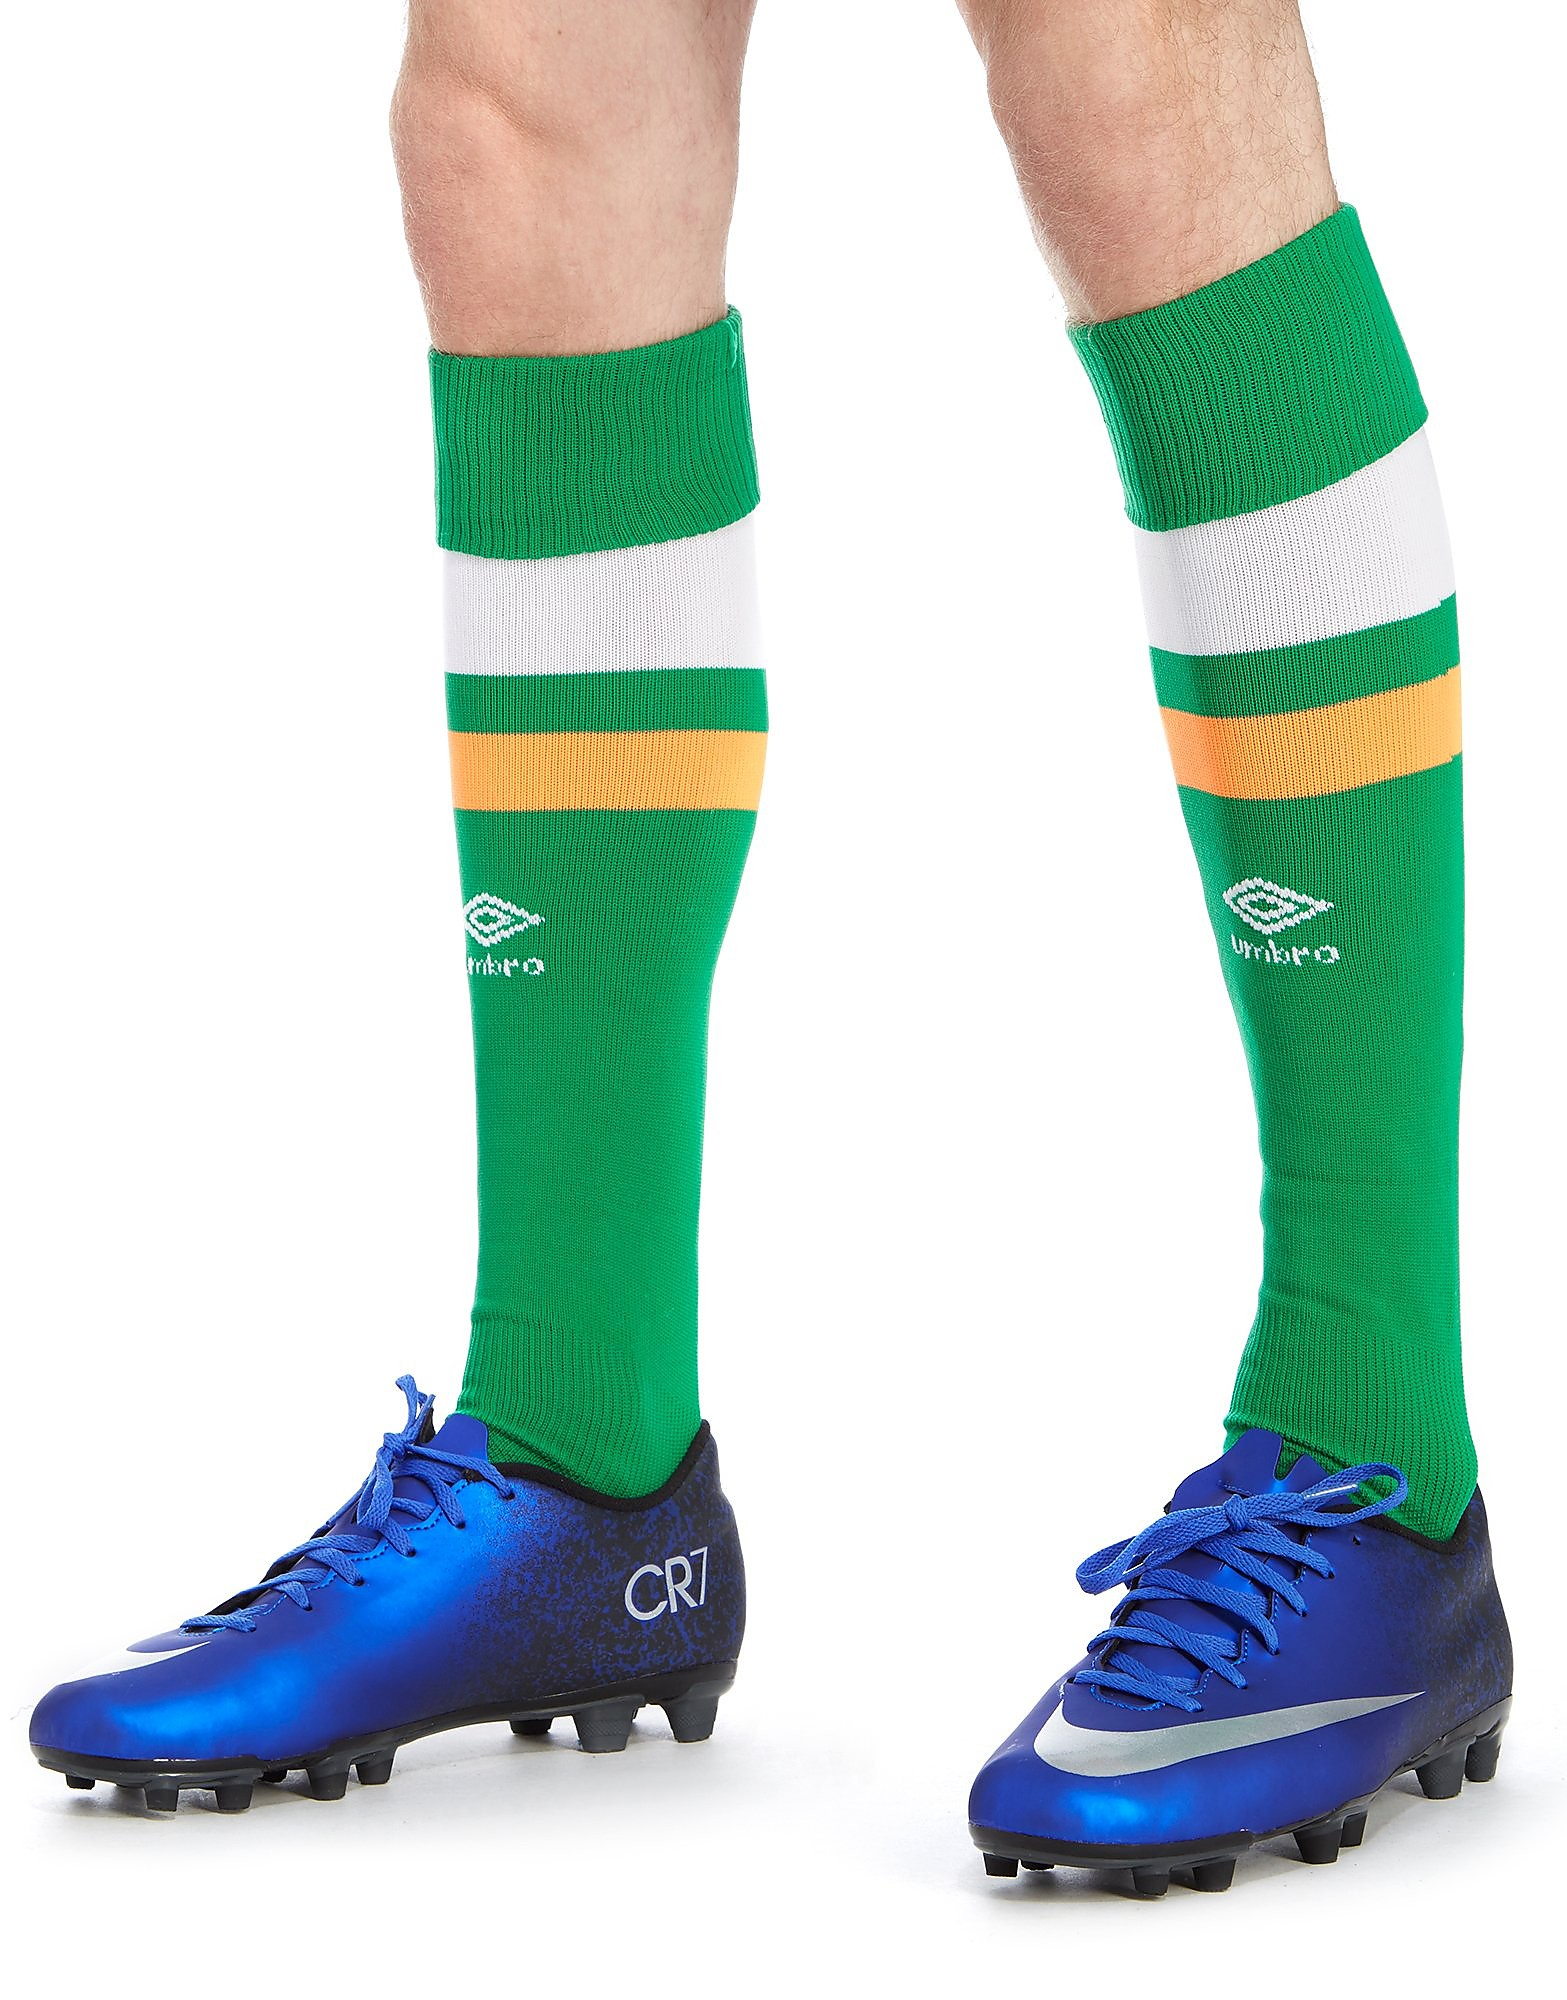 Umbro Republic of Ireland 2016 Home Socks